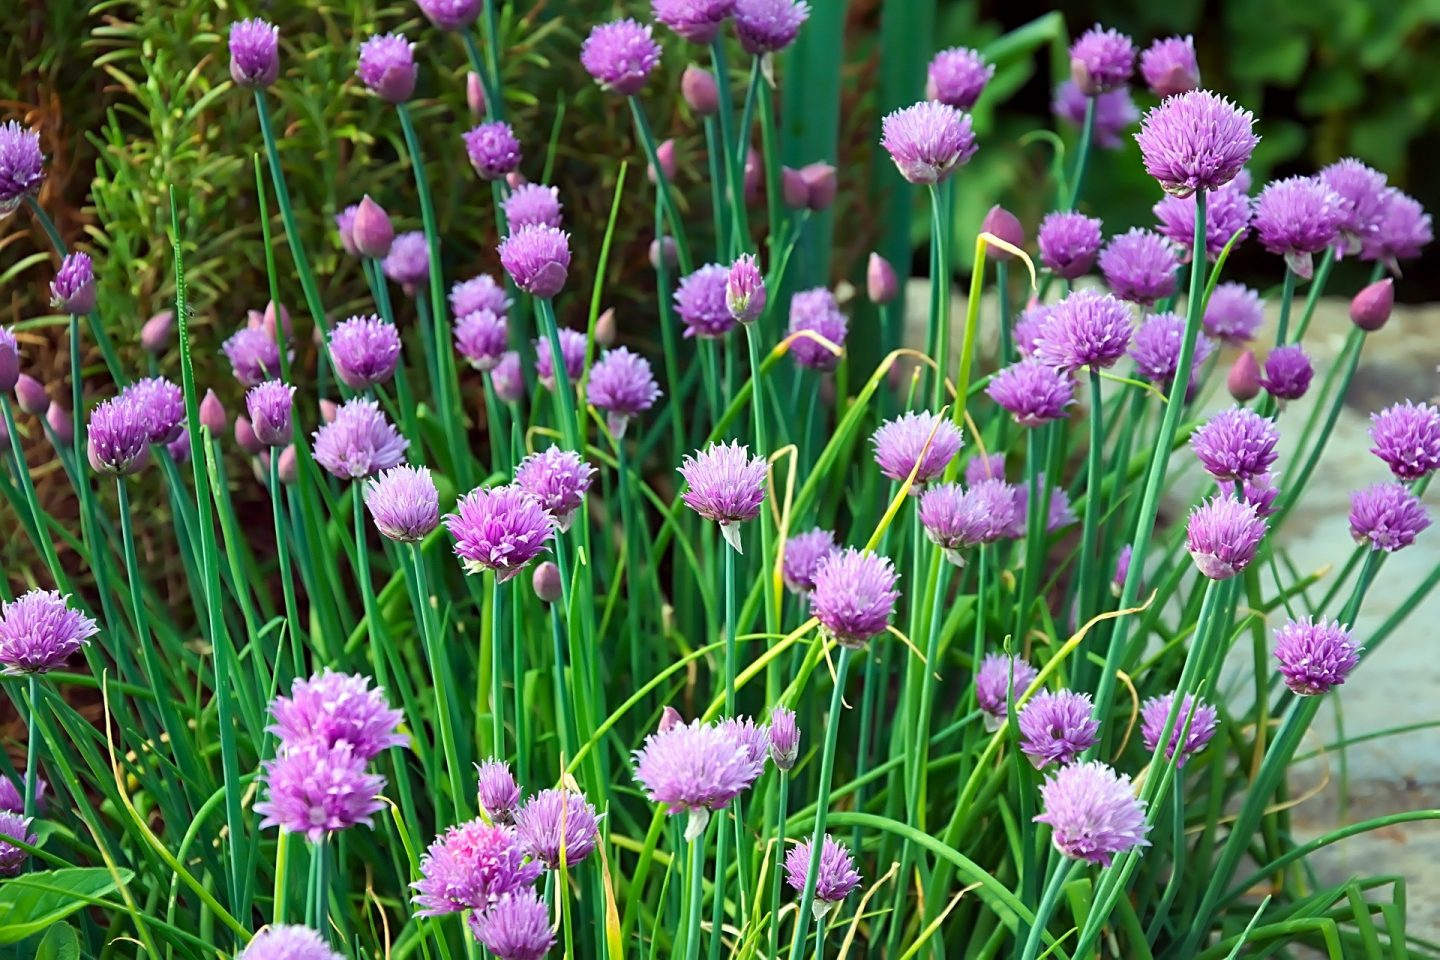 Chives image